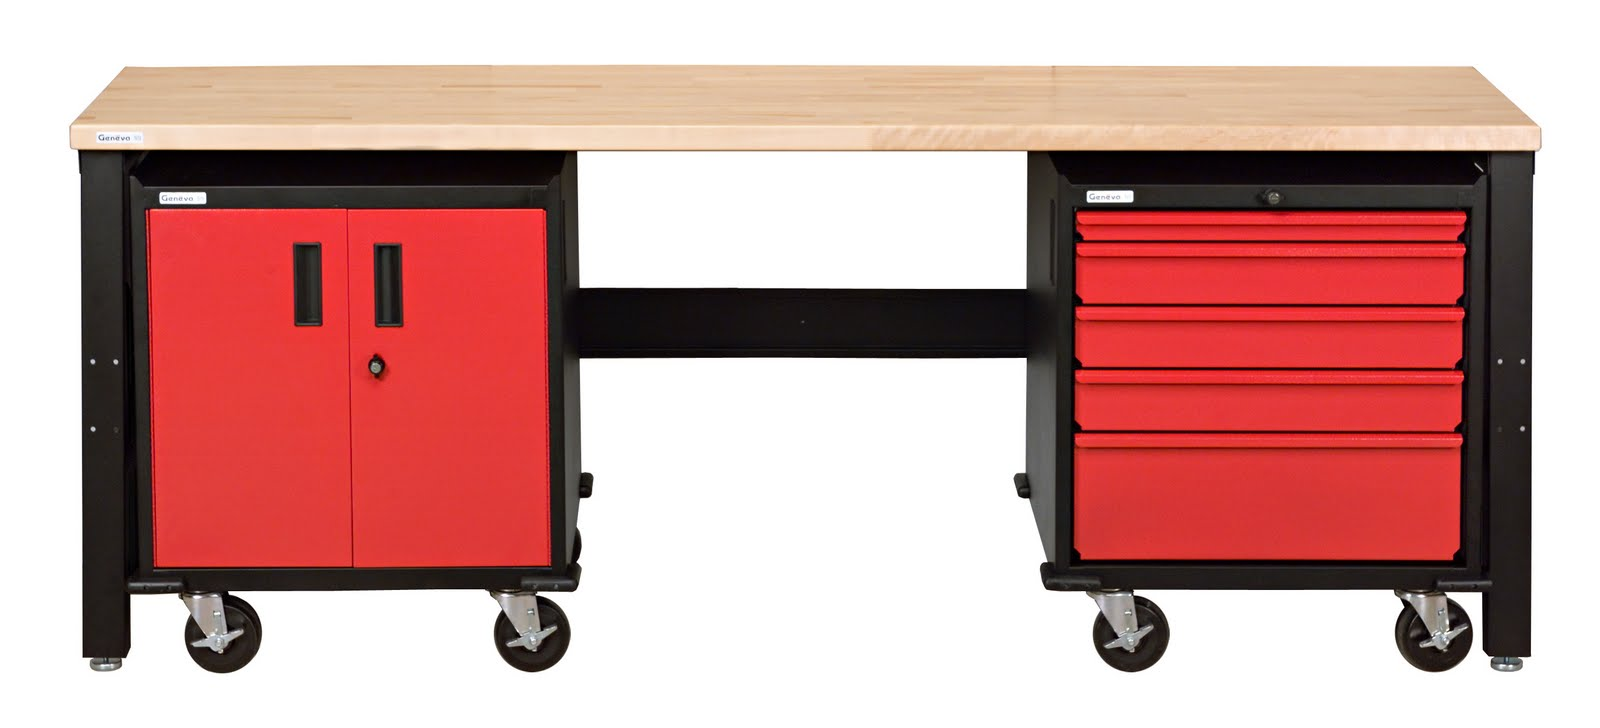 Woodwork Garage Workbench Plans Steel Pdf Plans